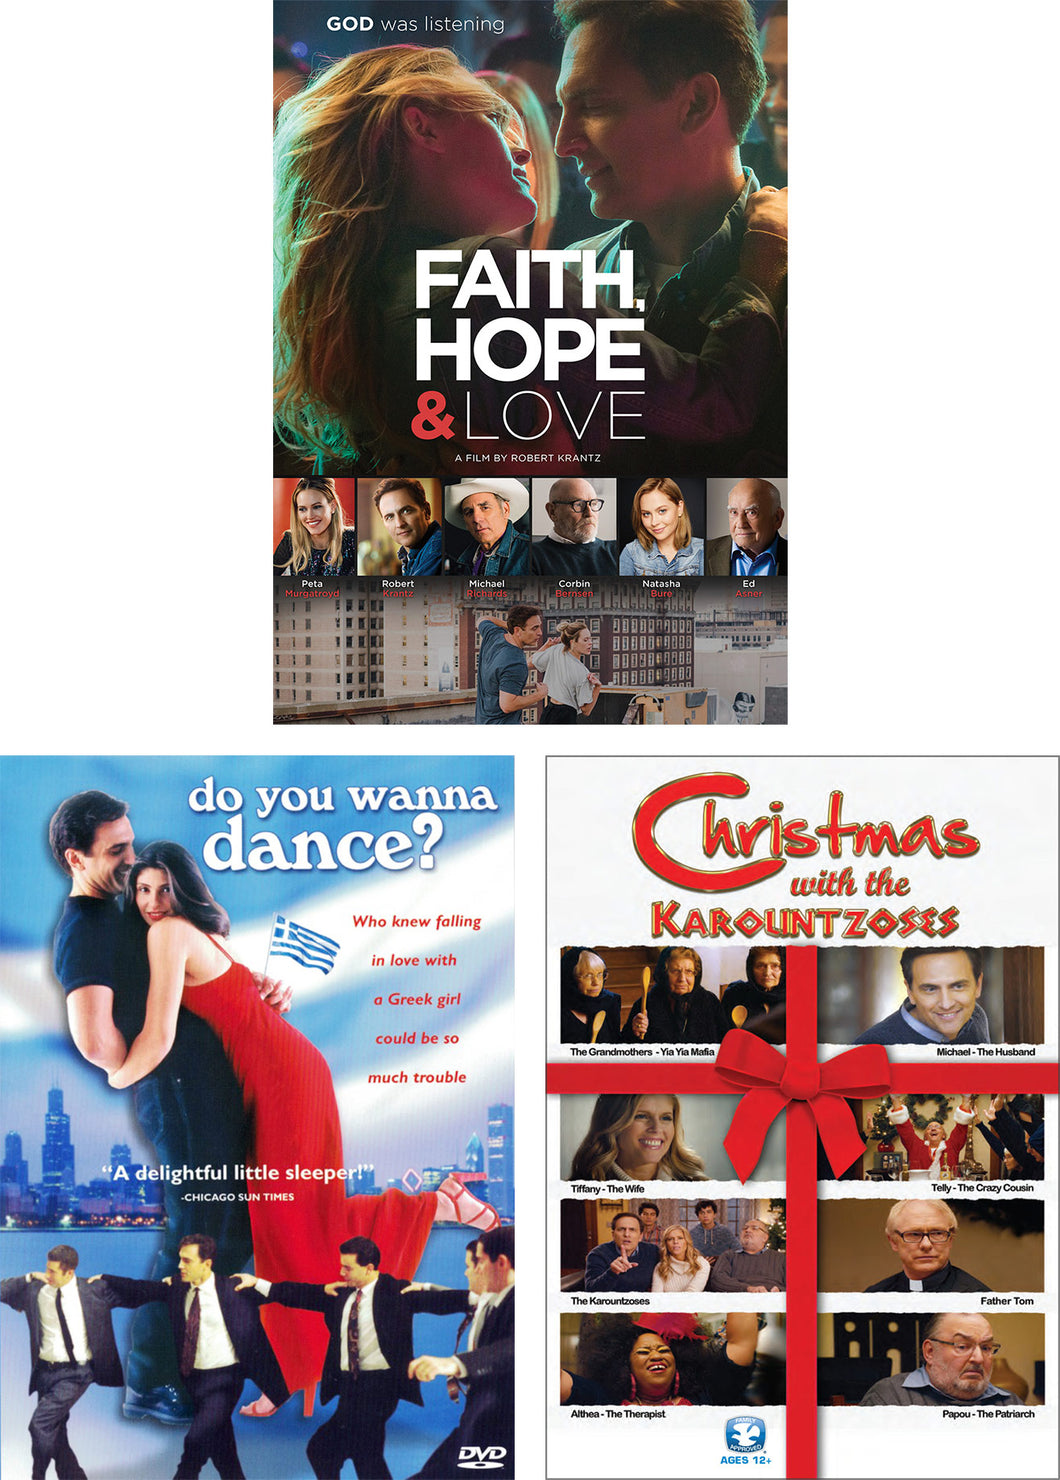 Faith, Hope & Love / Do You Wanna Dance? / Christmas With The Karountzoses - DVD 3-Pack